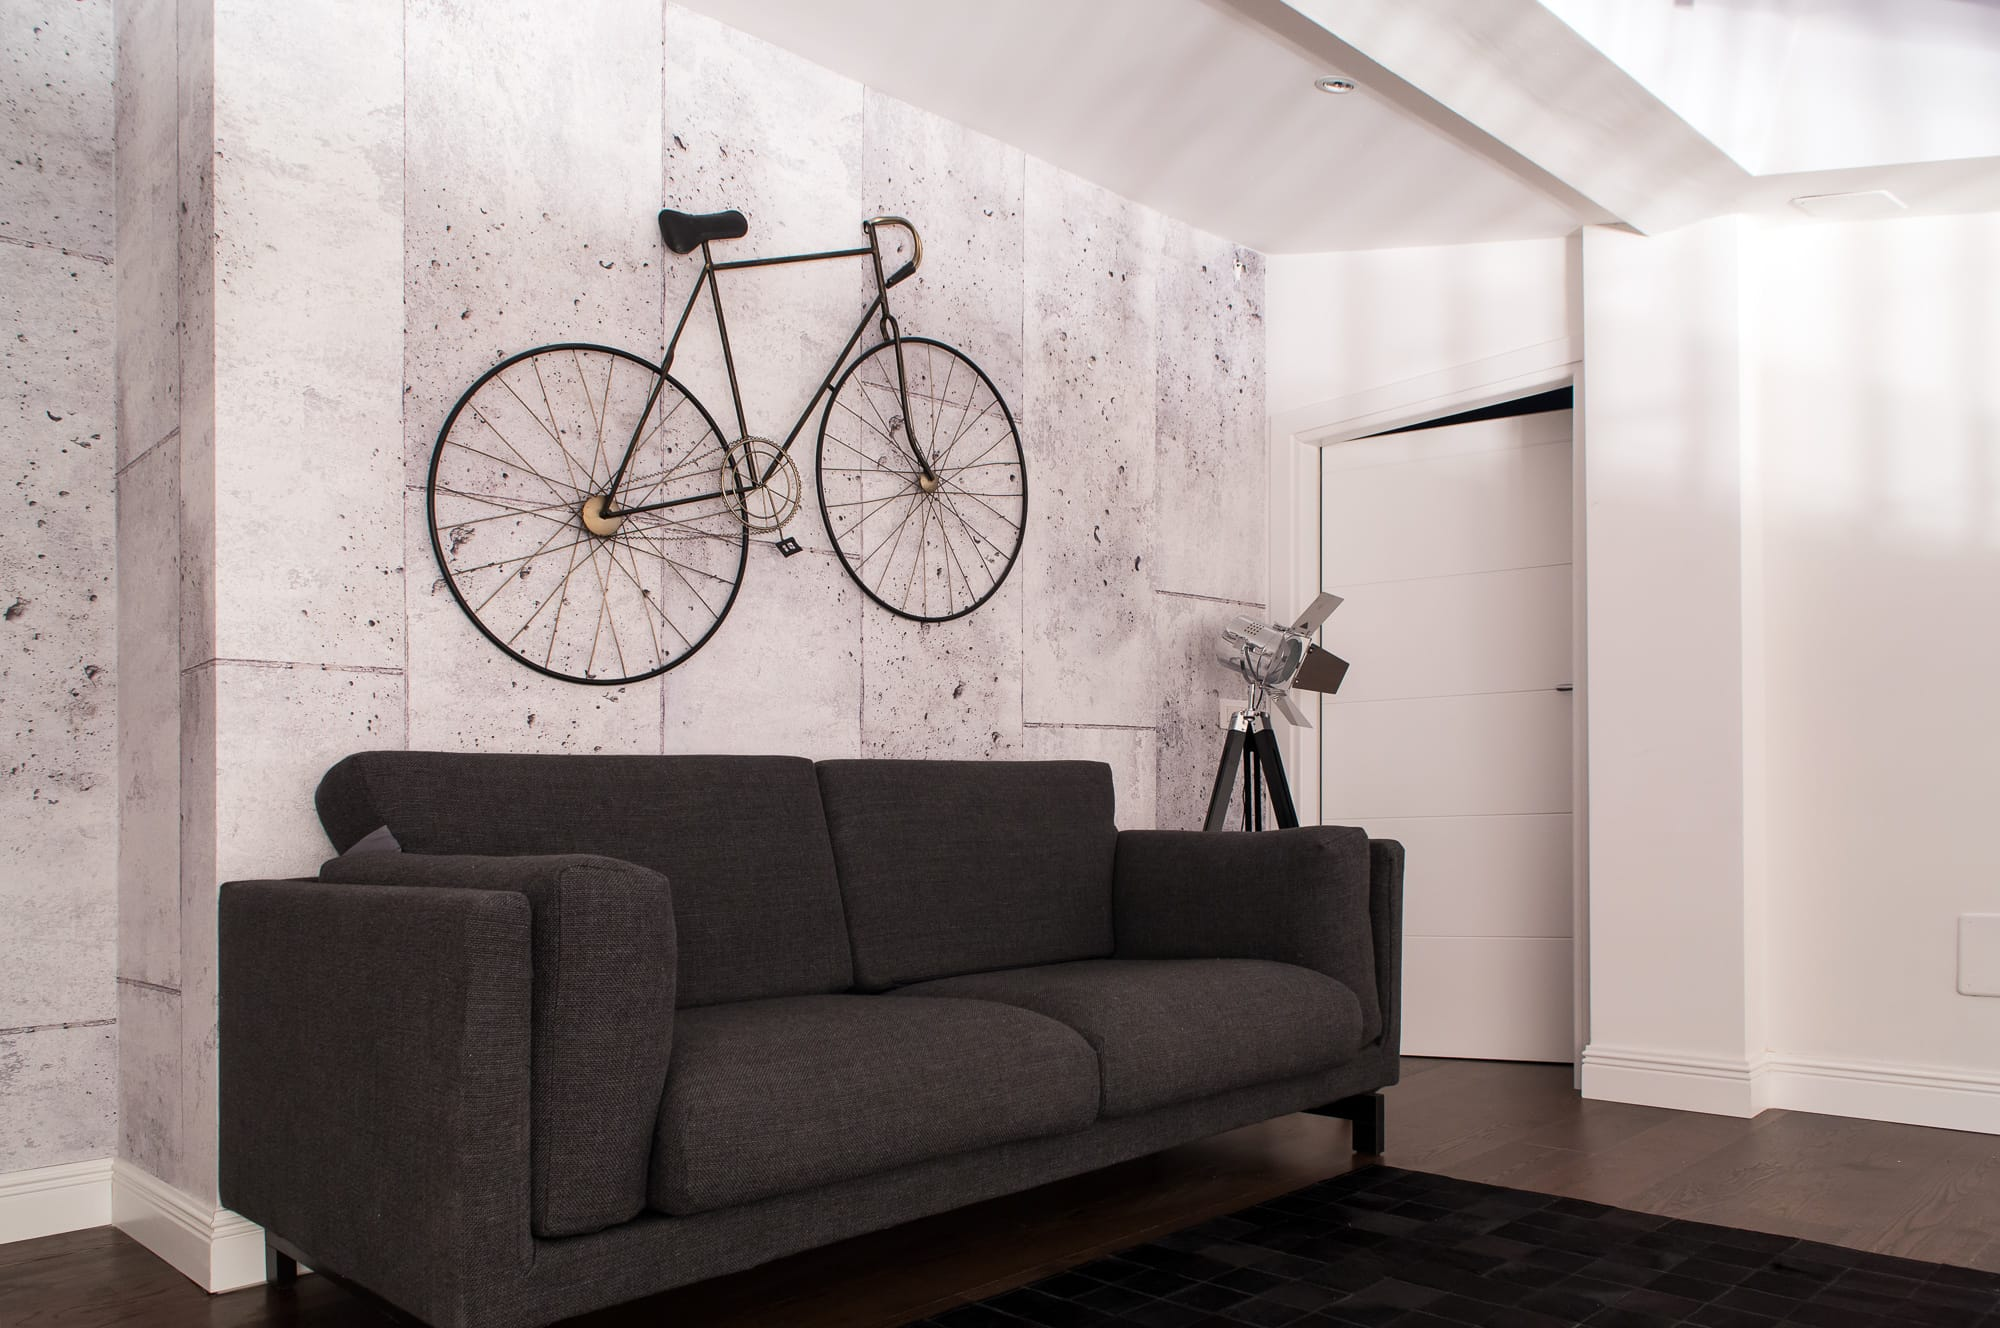 Gray concrete tiles on the wall and a gray couch under it. We see a leather rug on the floor made from patches and a vintage metal frame bike hanging on top of the sofa.